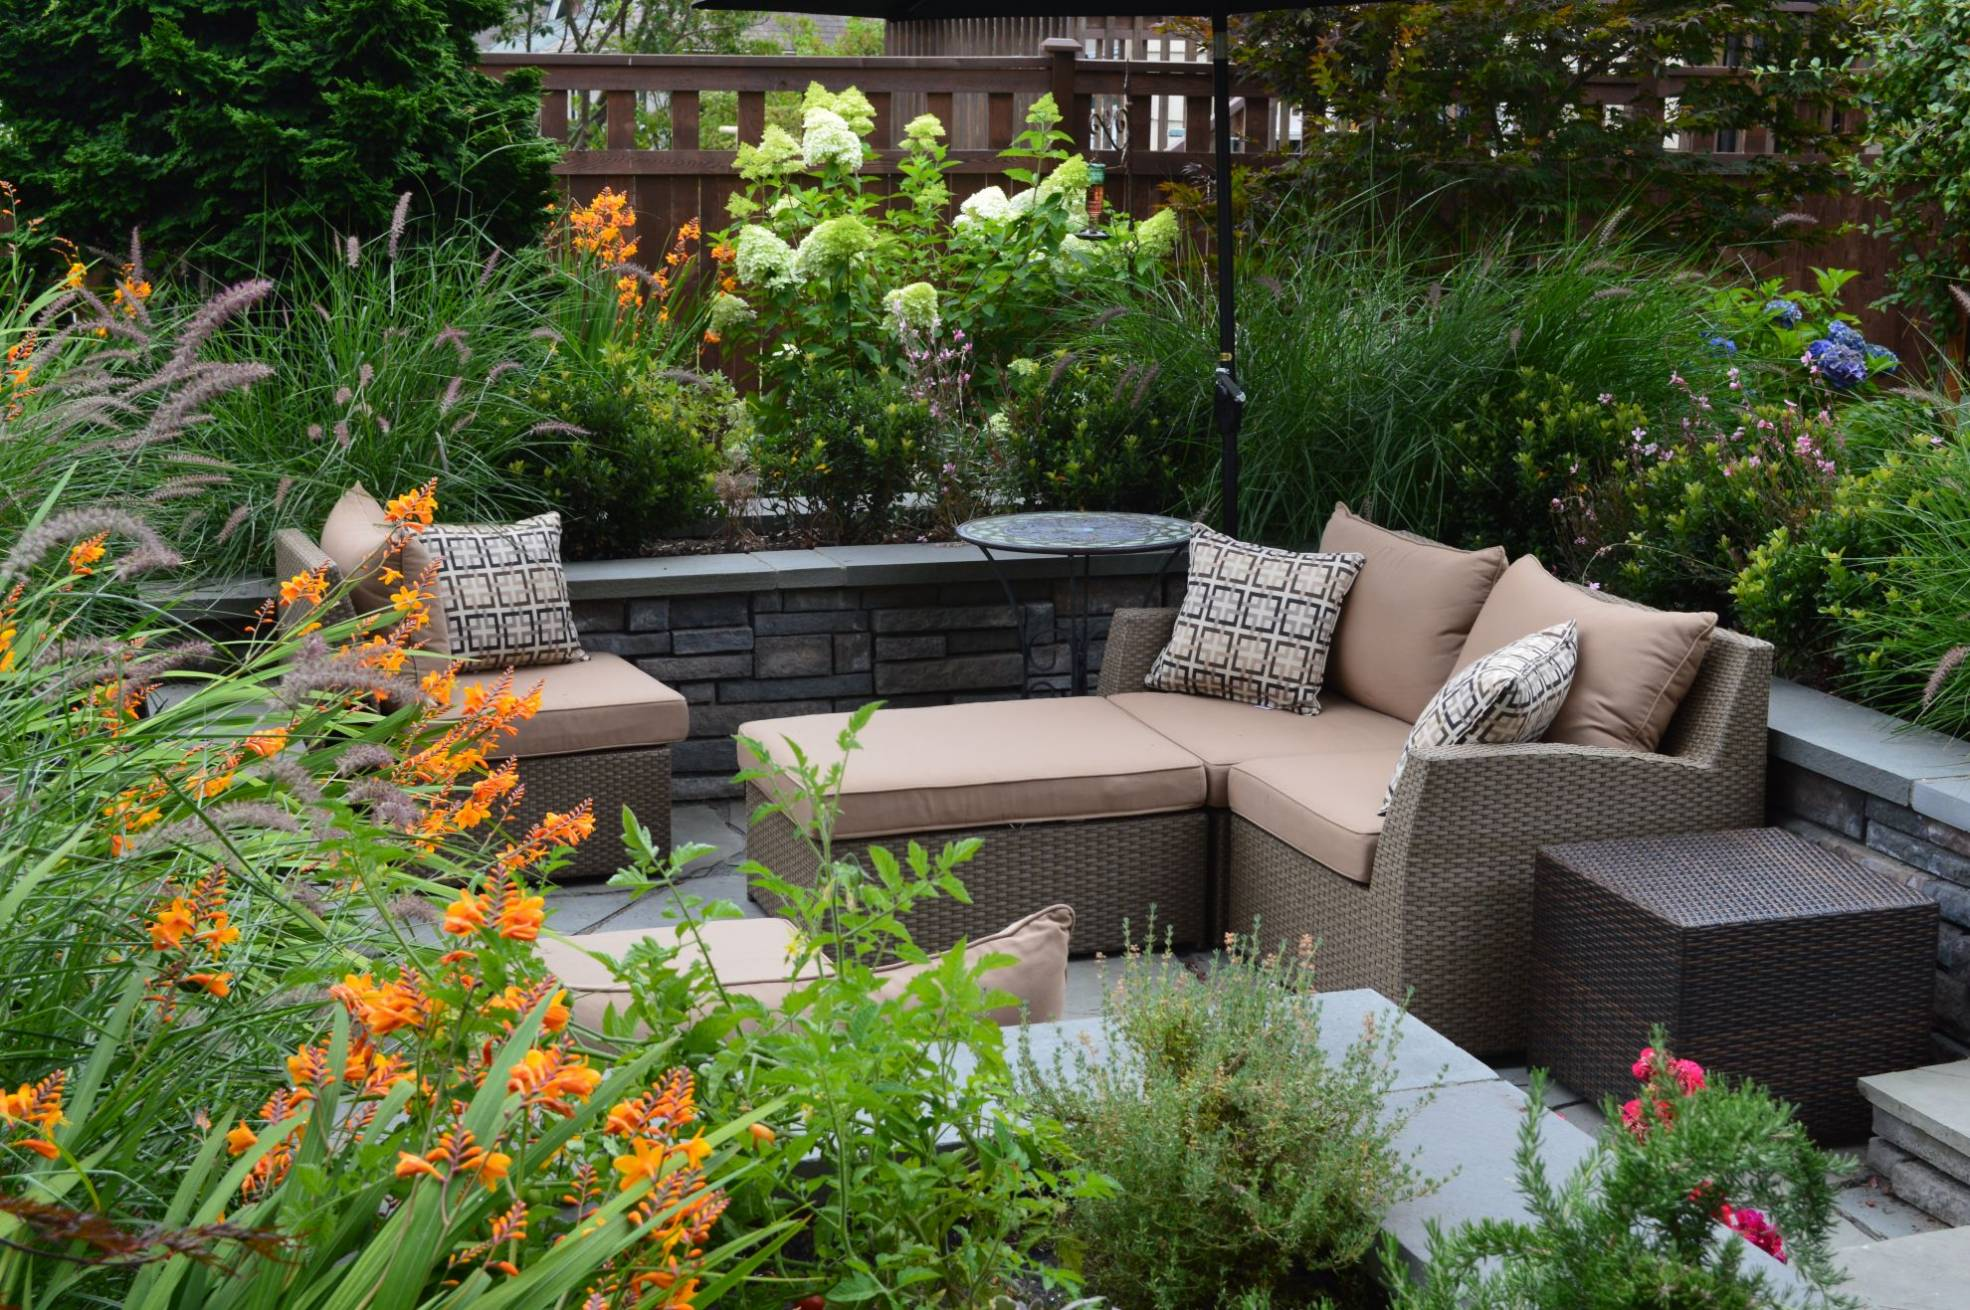 landscape design in seattle - Garden Design Trends 2014